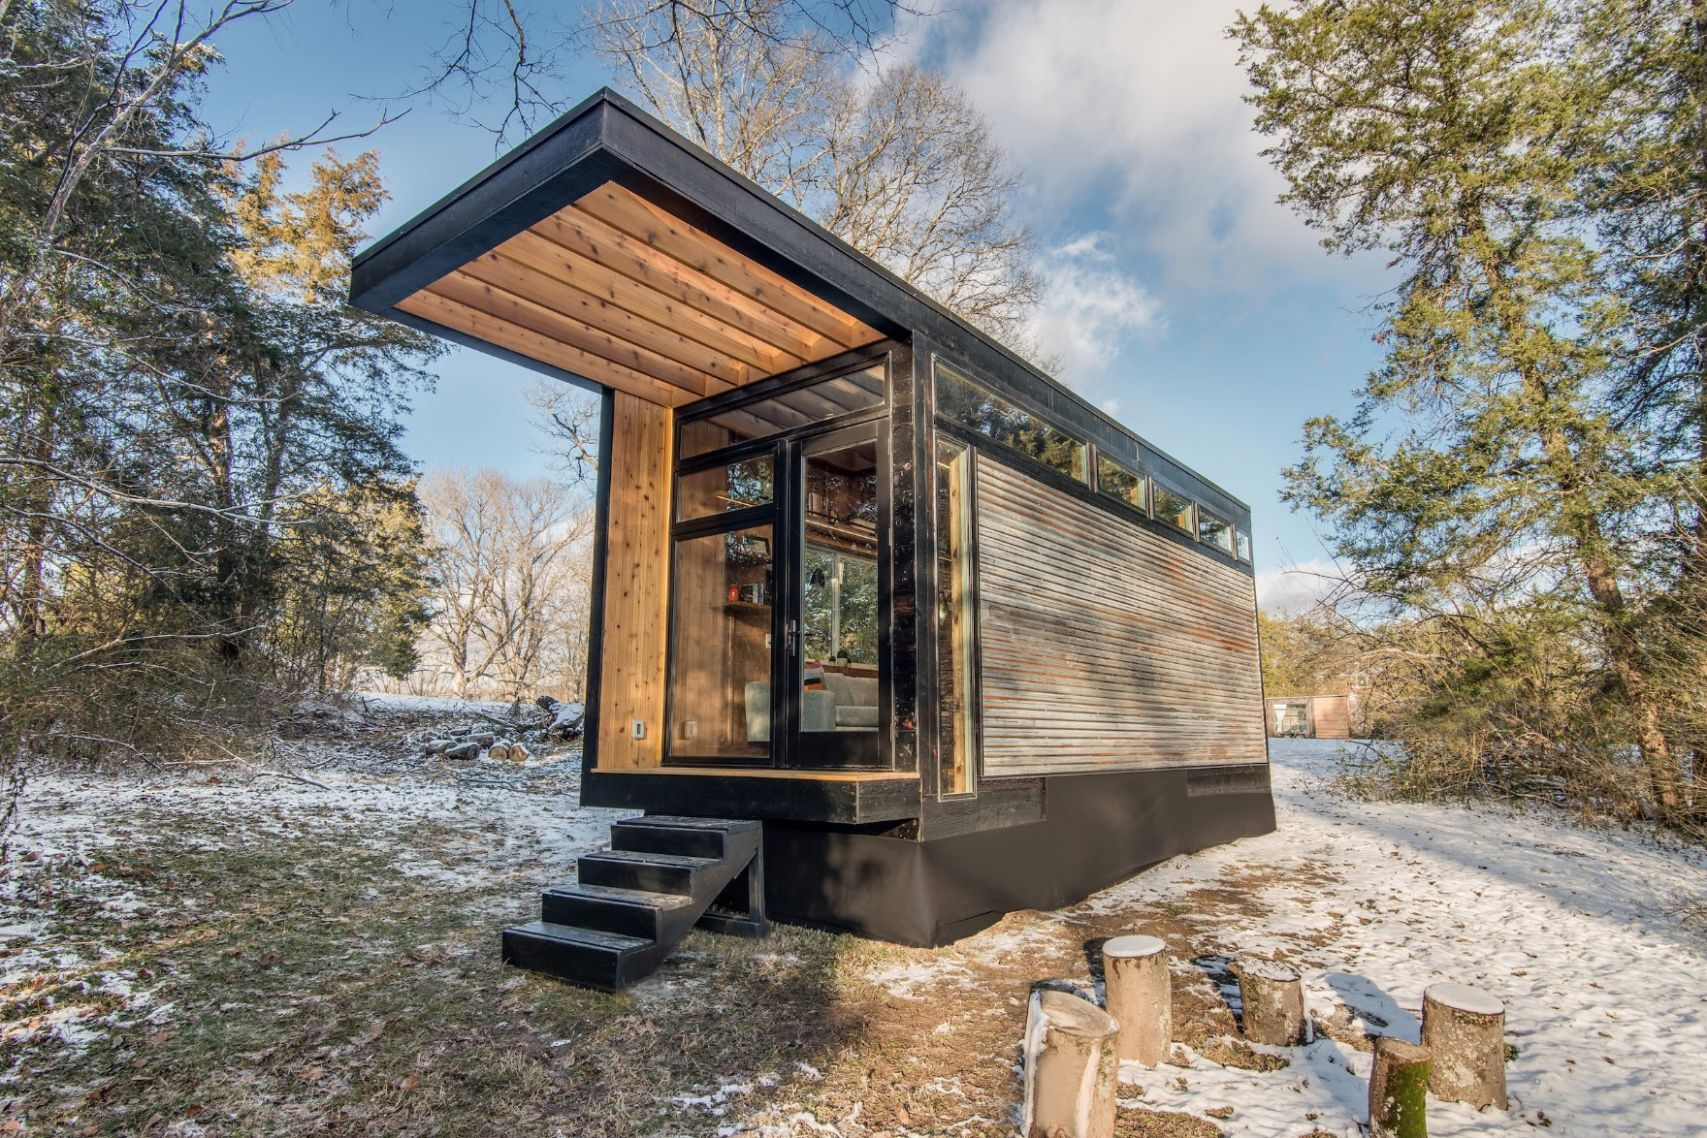 Writer's Modern/Retro Tiny House in the Woods...